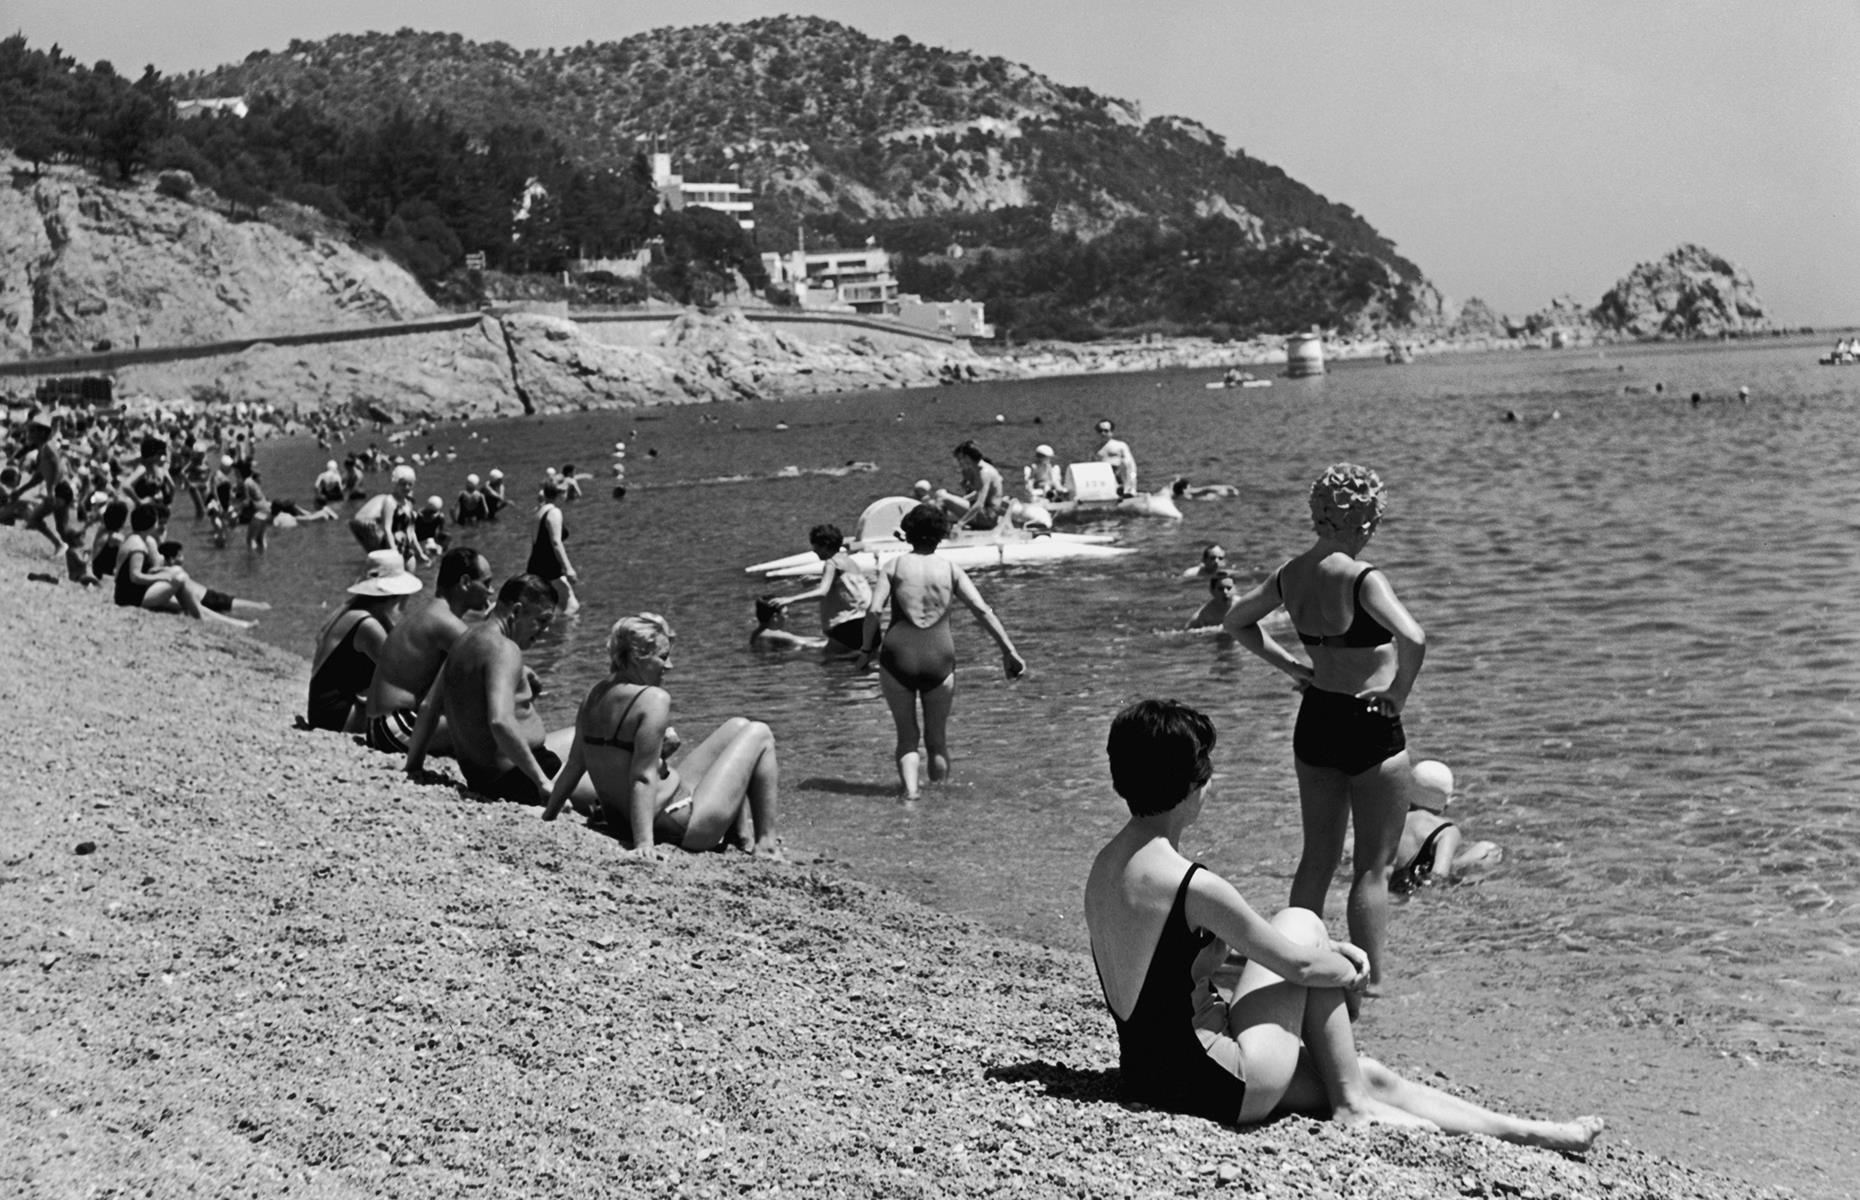 Slide 16 of 38: By the 1960s, Spanish seaside resorts such as Benidorm in Costa Blanca buzzed with people, attracting tourists from Britain and beyond. Package holidays grew in popularity during this decade too. In this Sixtiessnap, holidaymakers bask on a beach in Tossa de Mar, Costa Brava in northeastern Spain.